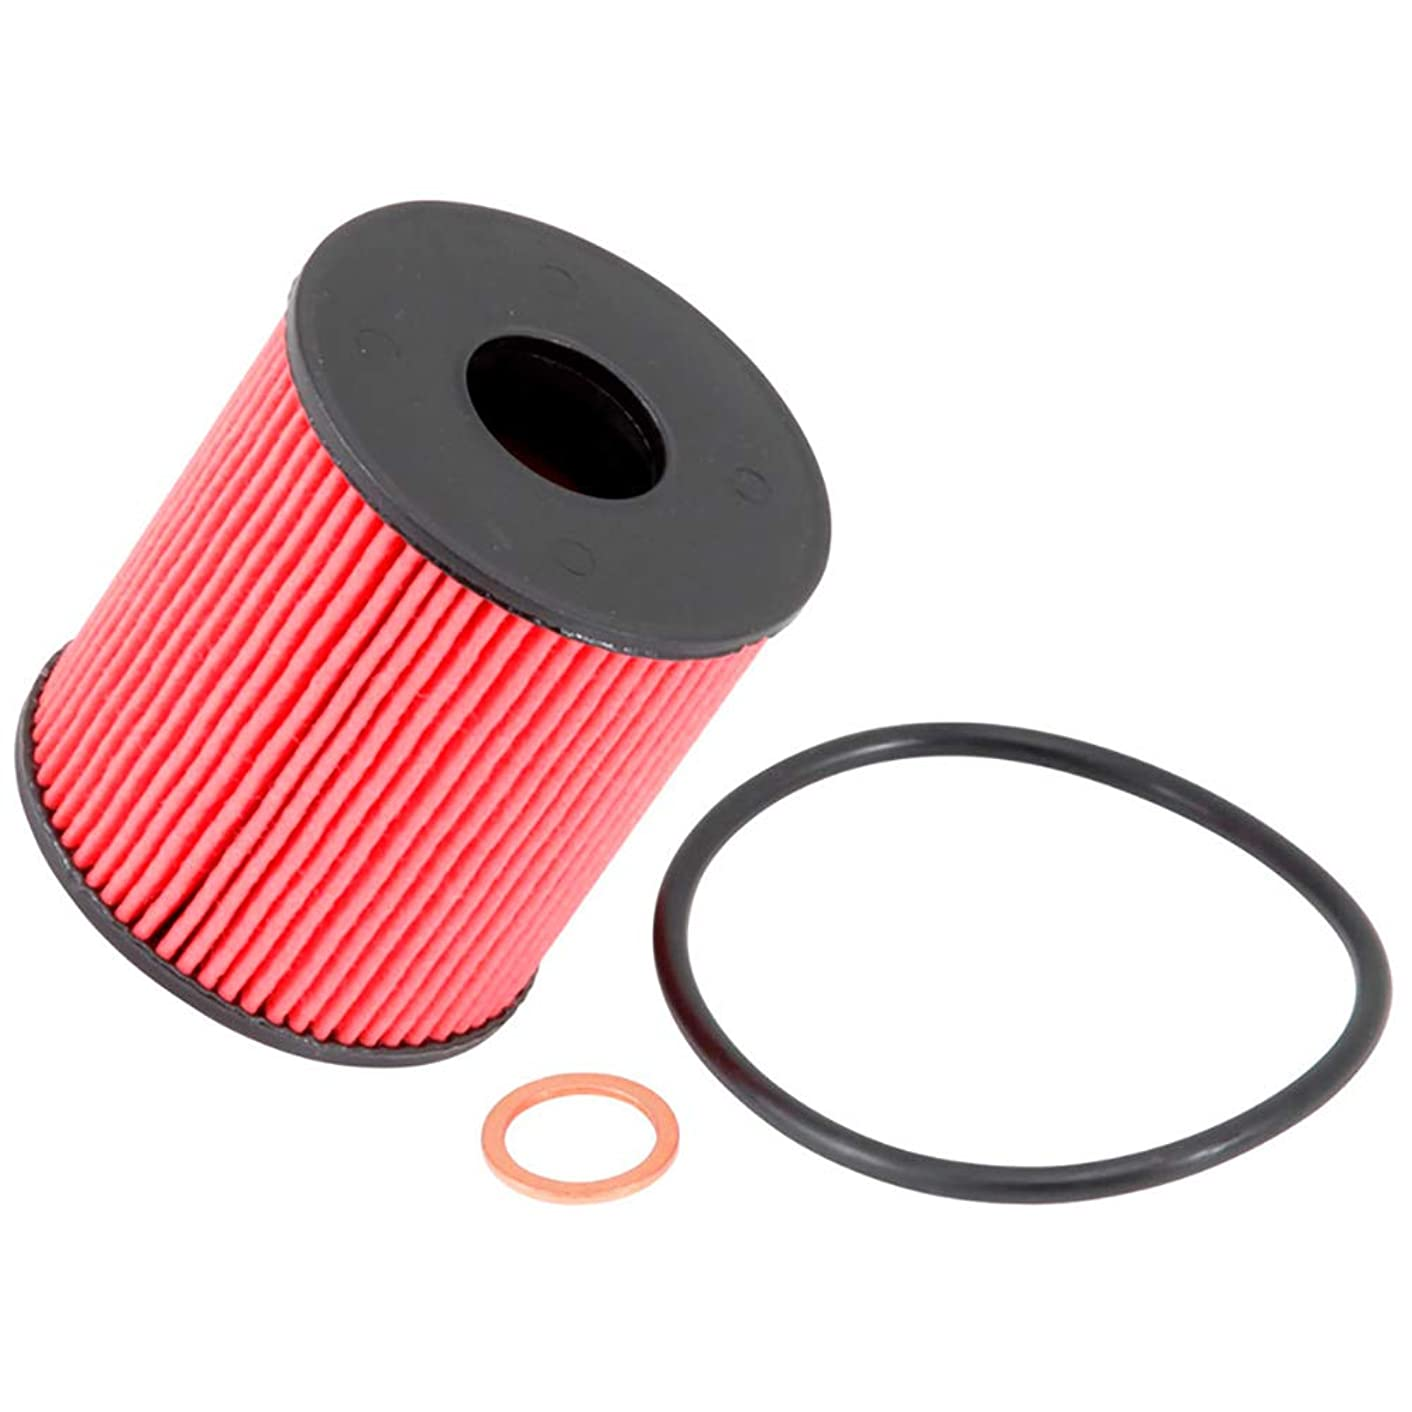 K&N PS-7025 Oil Filter